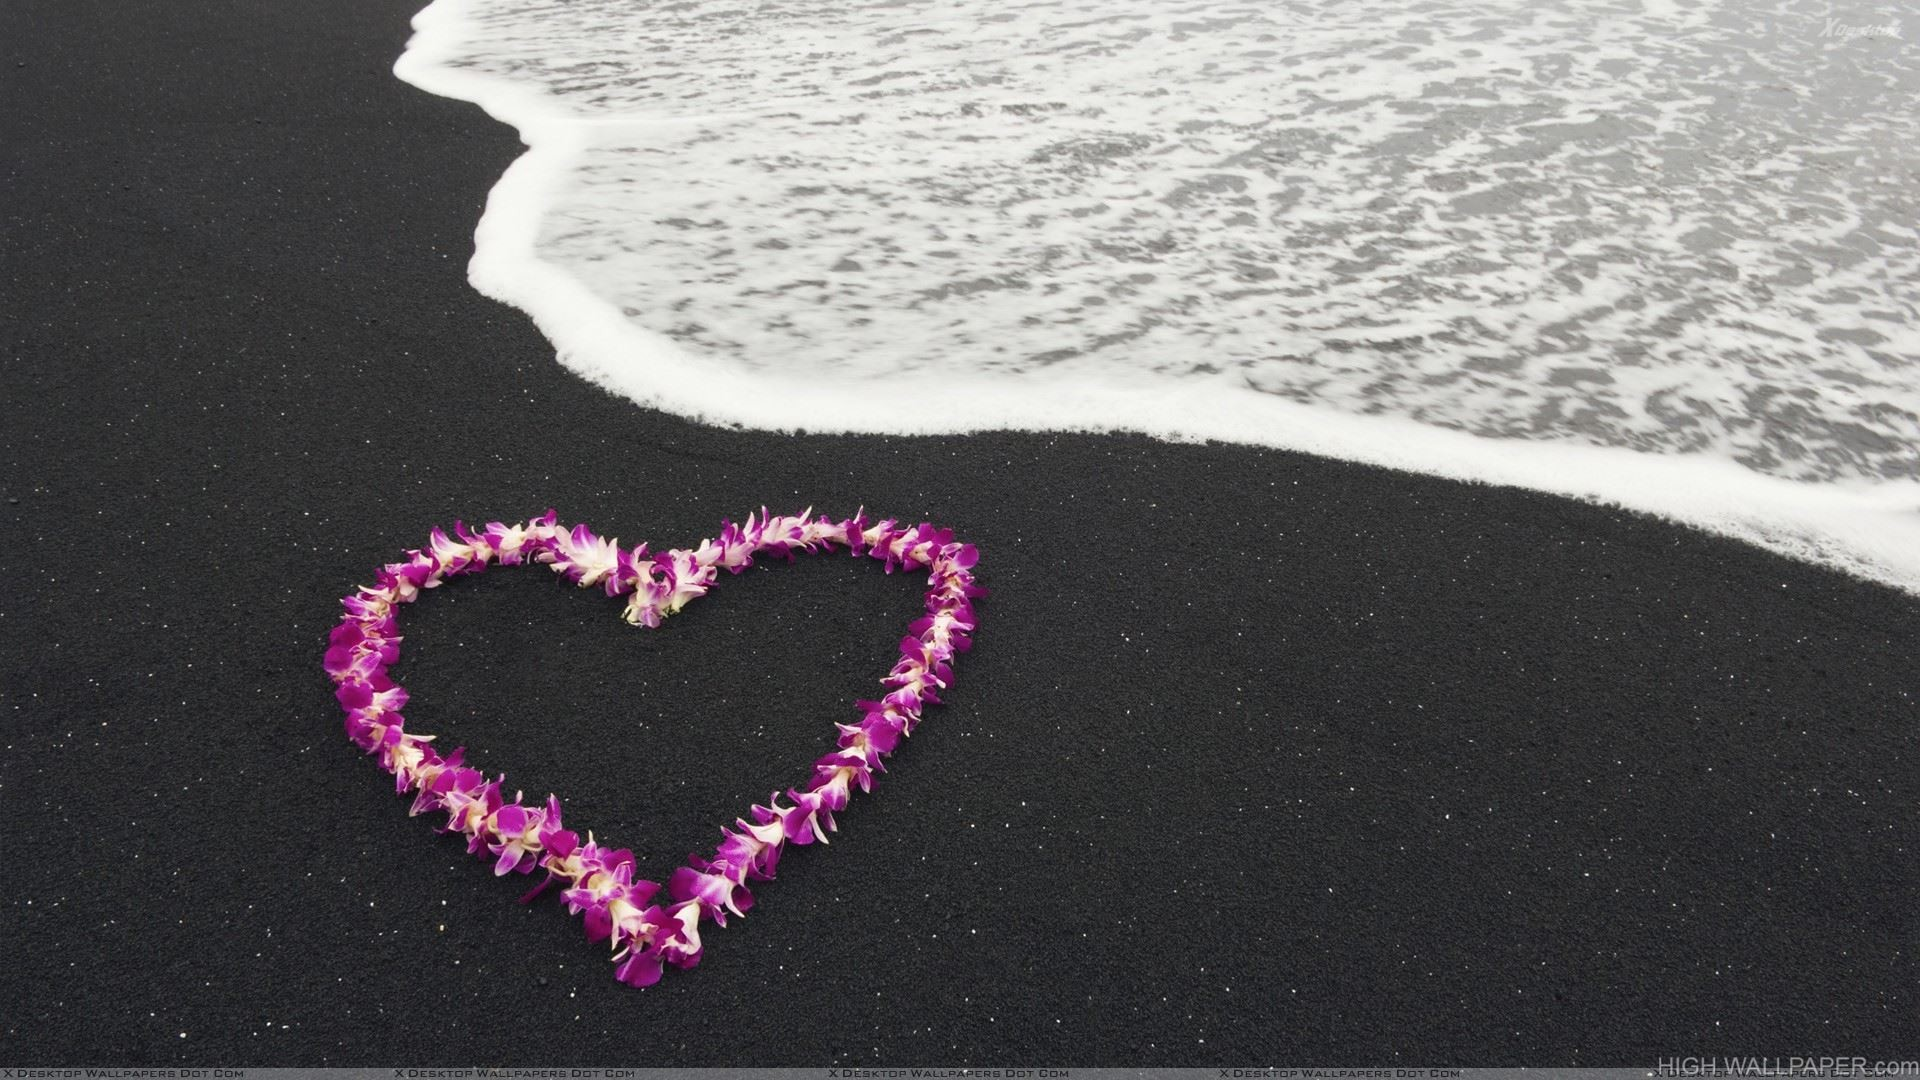 A Heart Made Of Flowers At Sea Side